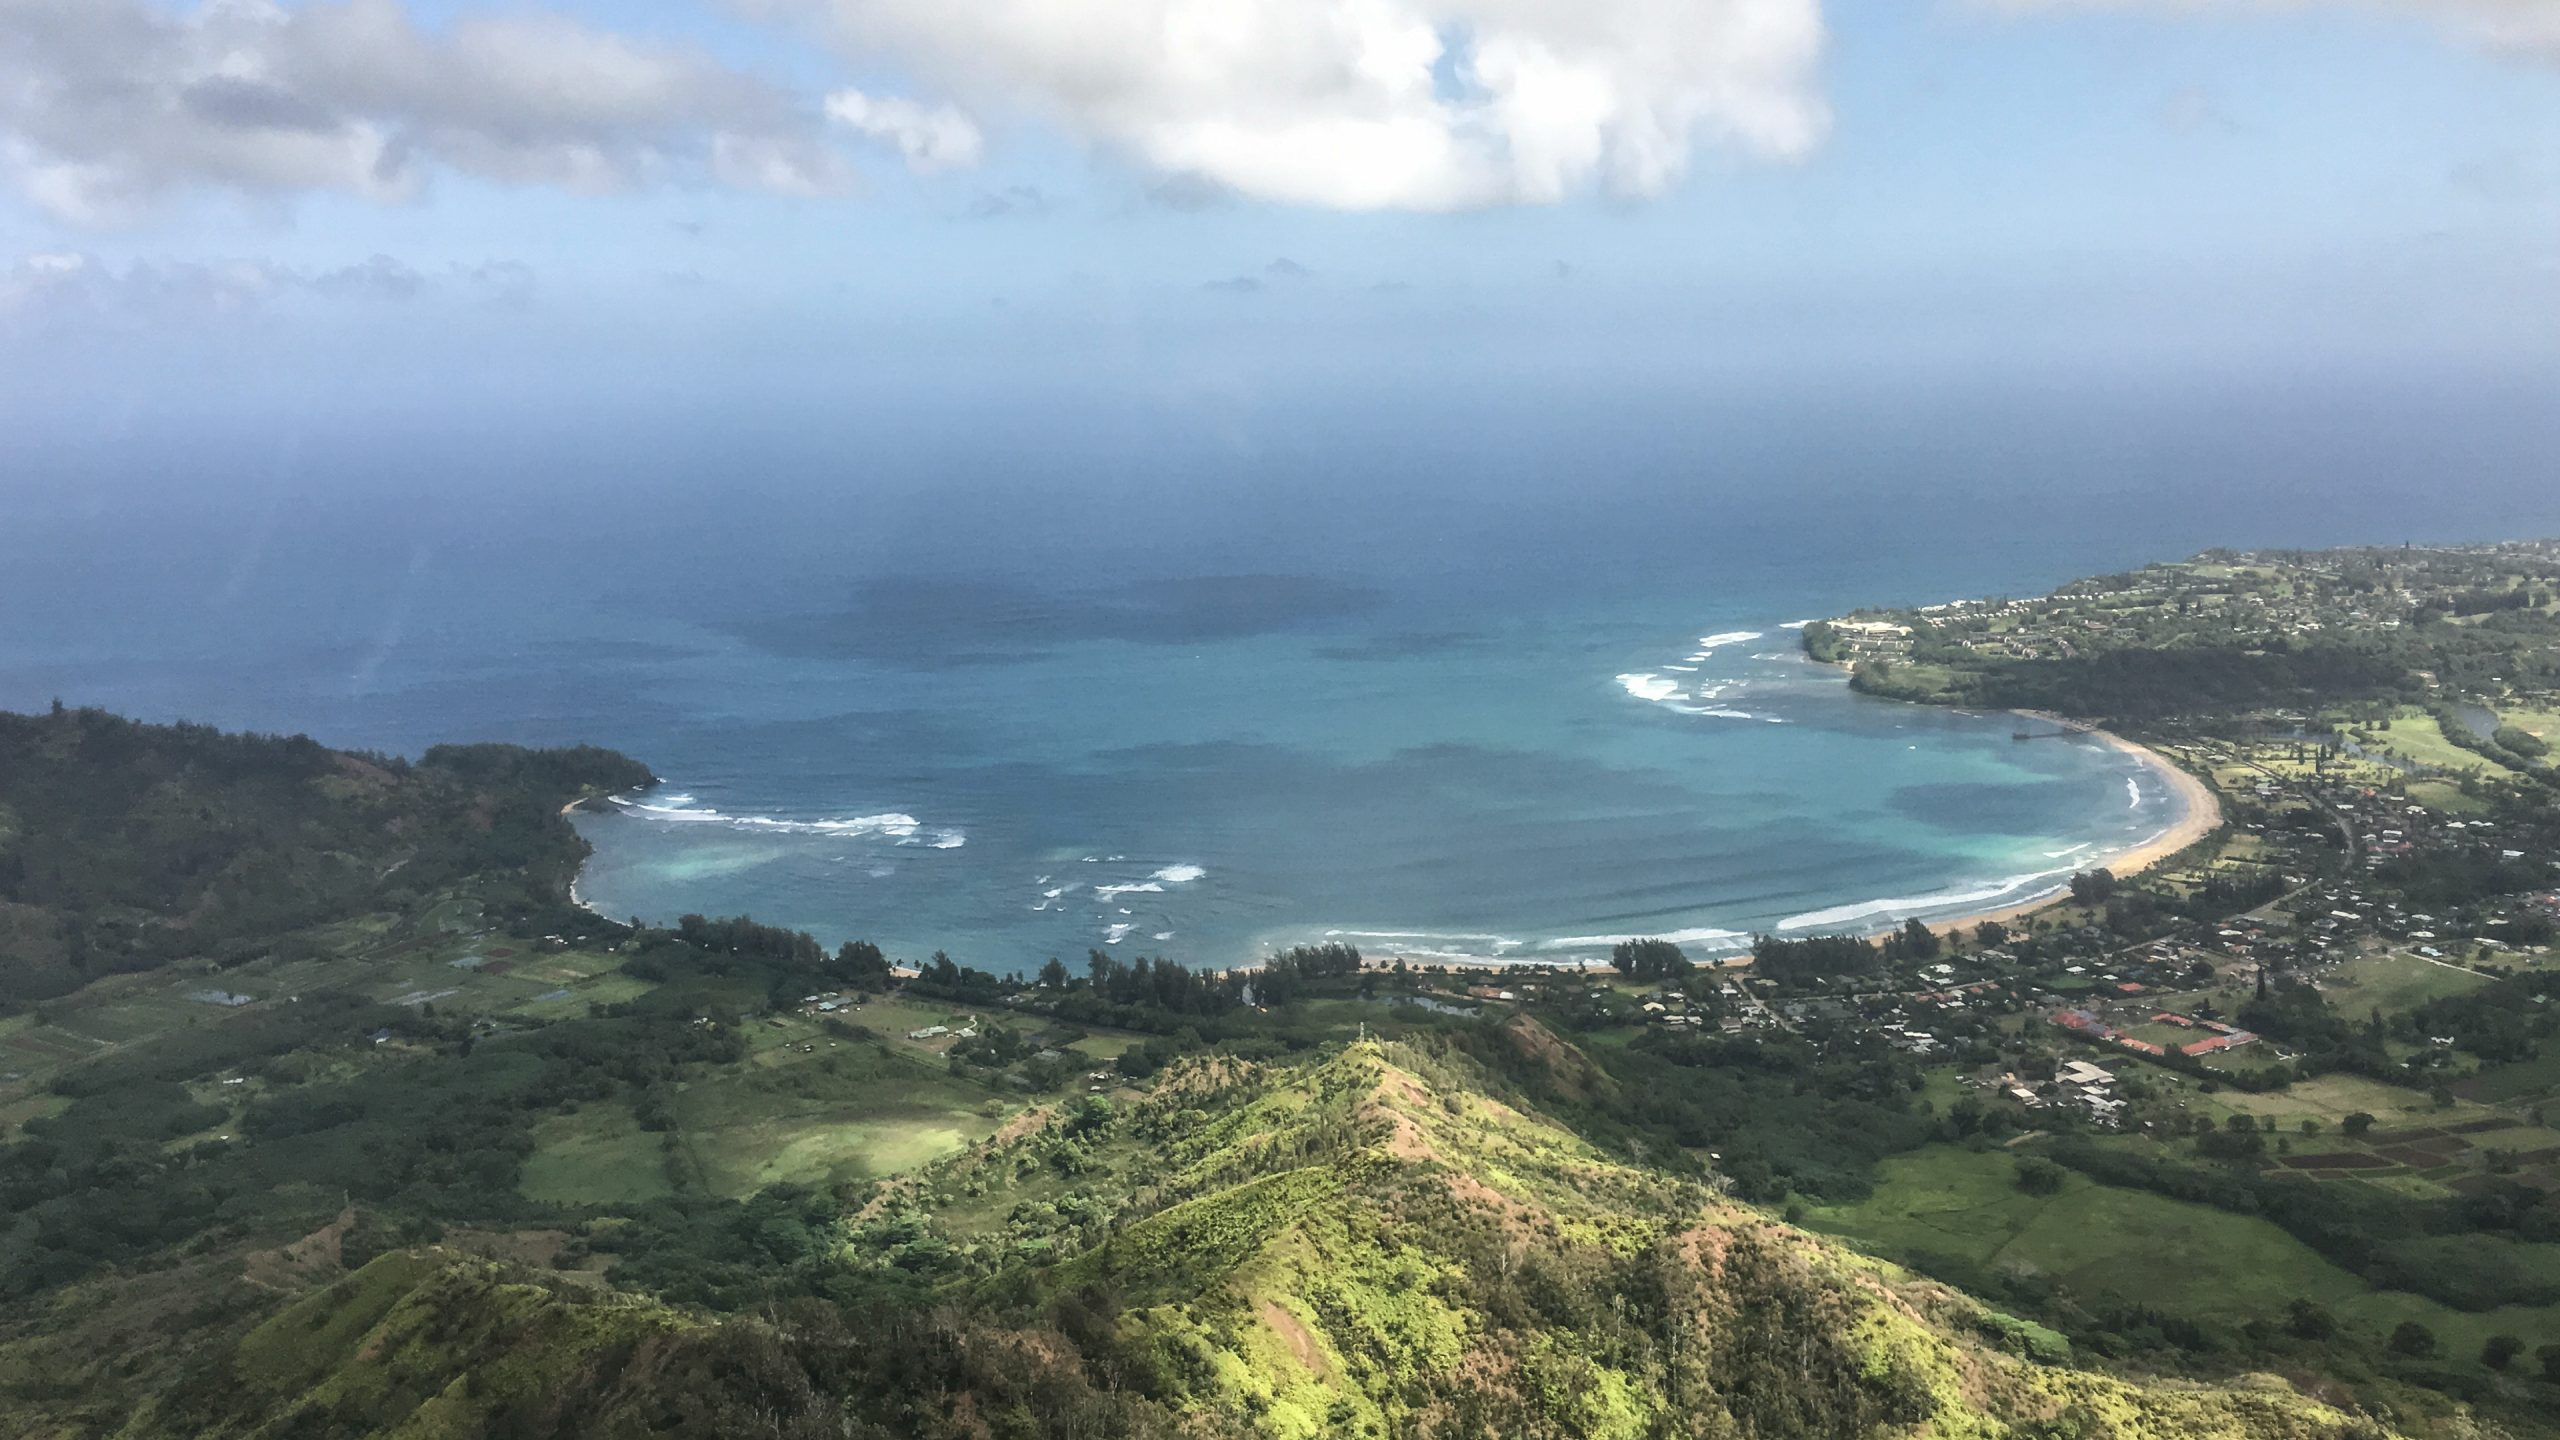 View from Blue Hawaiian helicopter tour